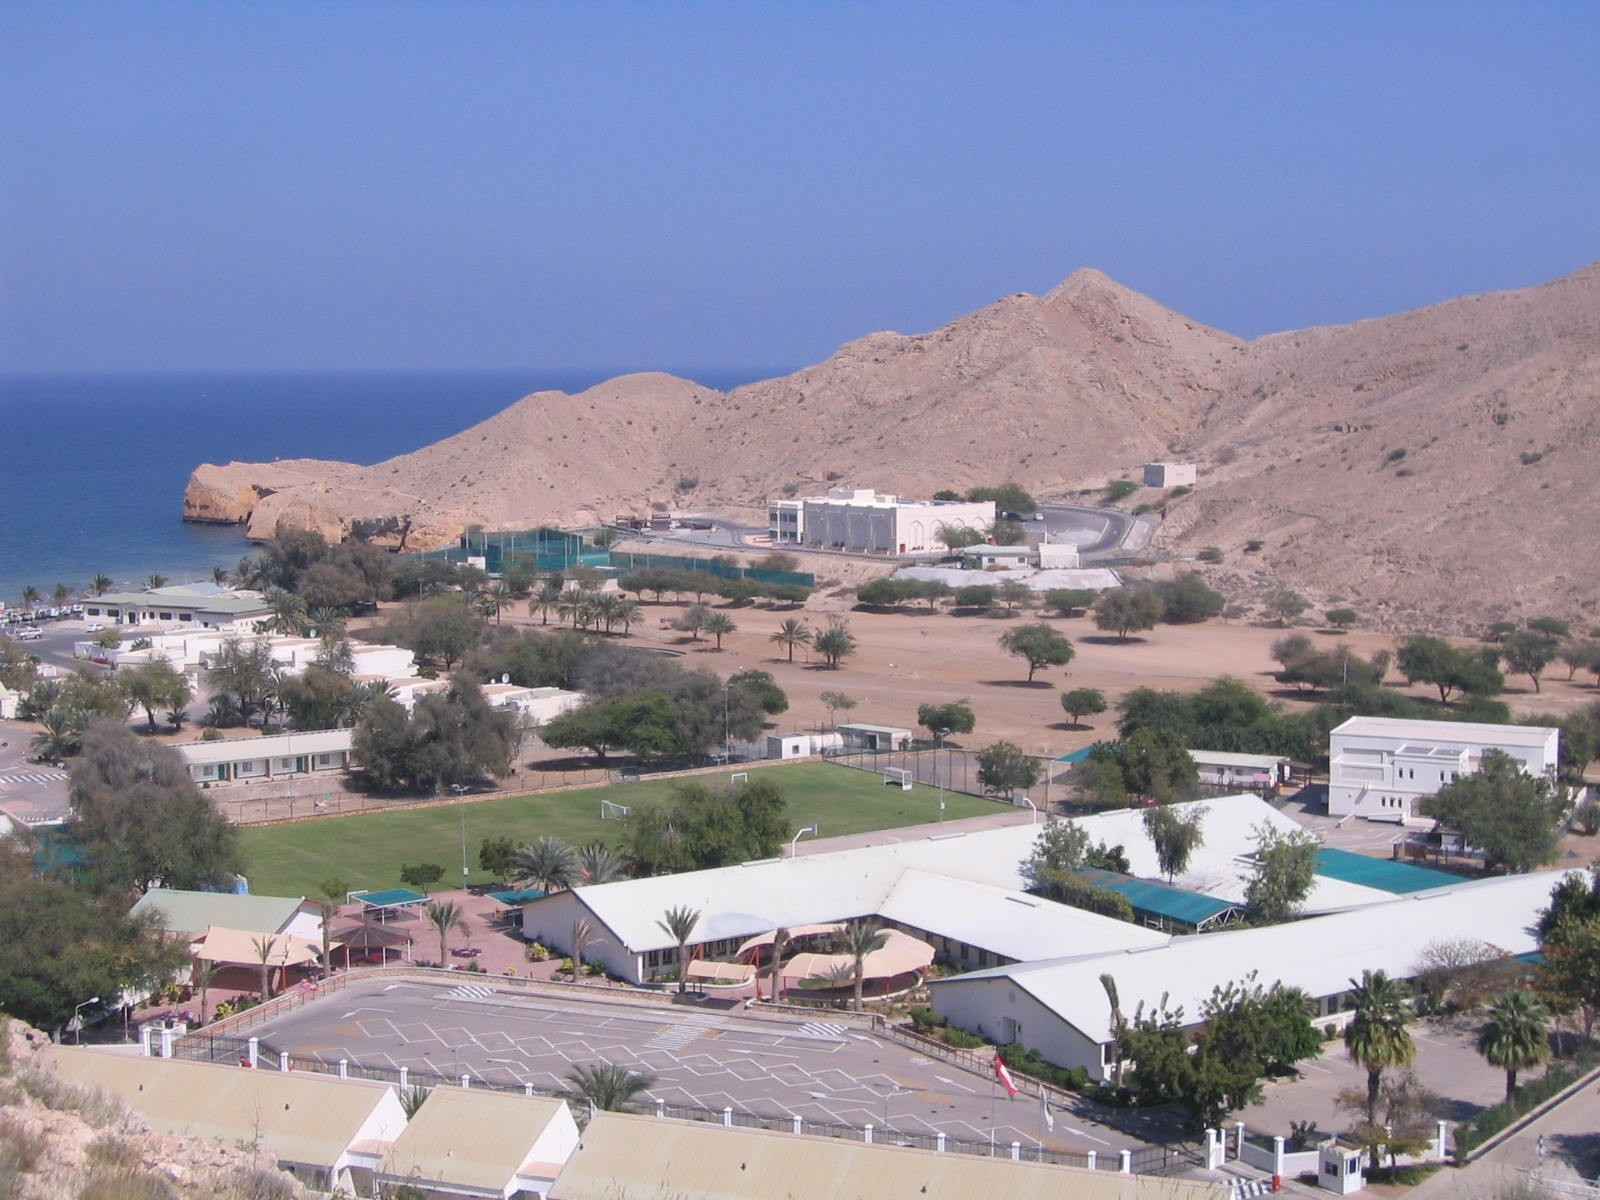 Tourist Attraction, Muscat, Oman, City coastal view